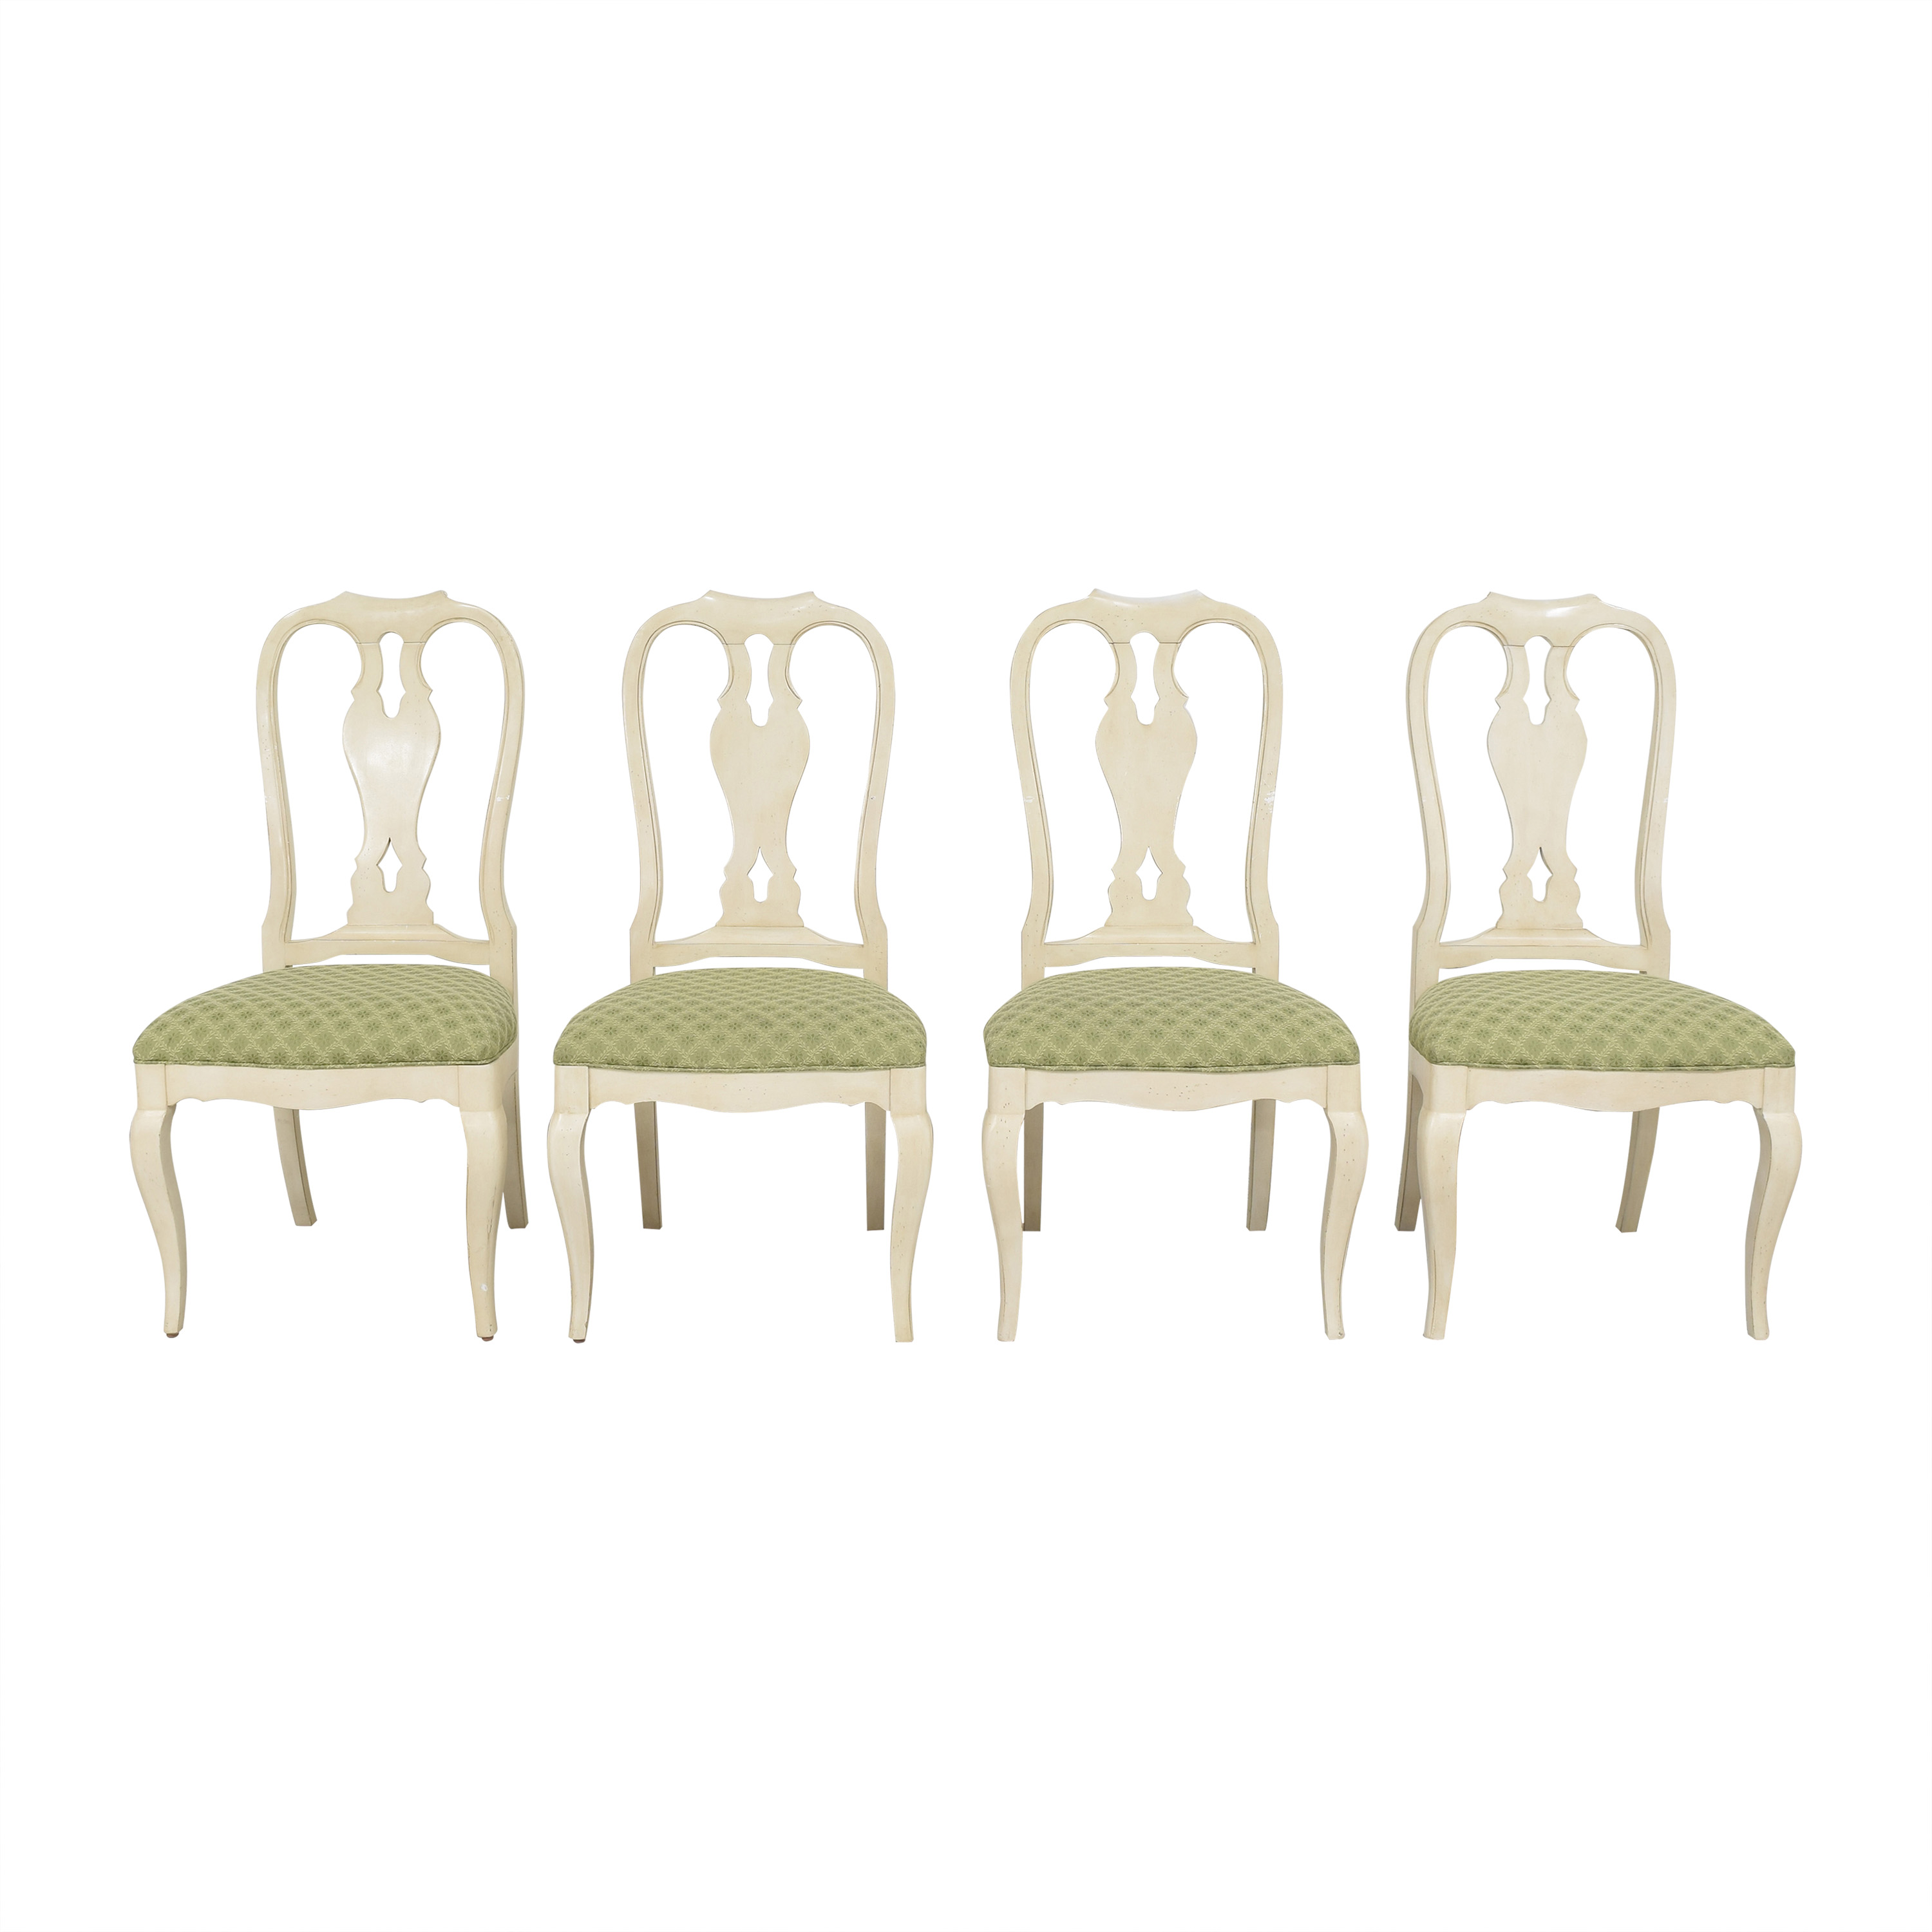 Ethan Allen Ethan Allen Upholstered Dining Side Chairs coupon